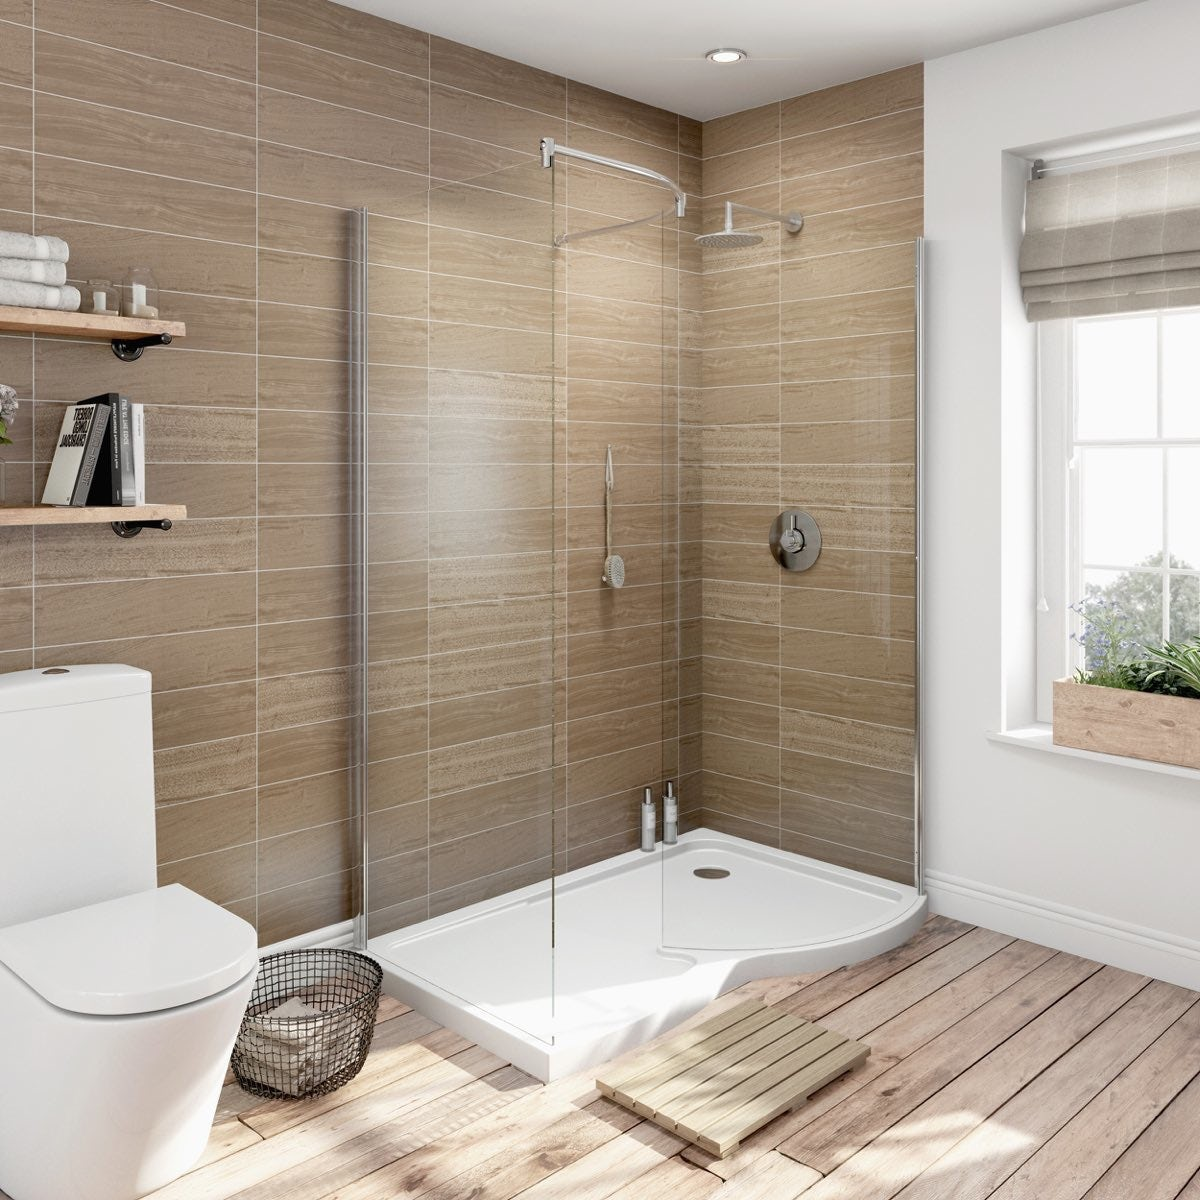 6mm curved walk in shower enclosure with tray